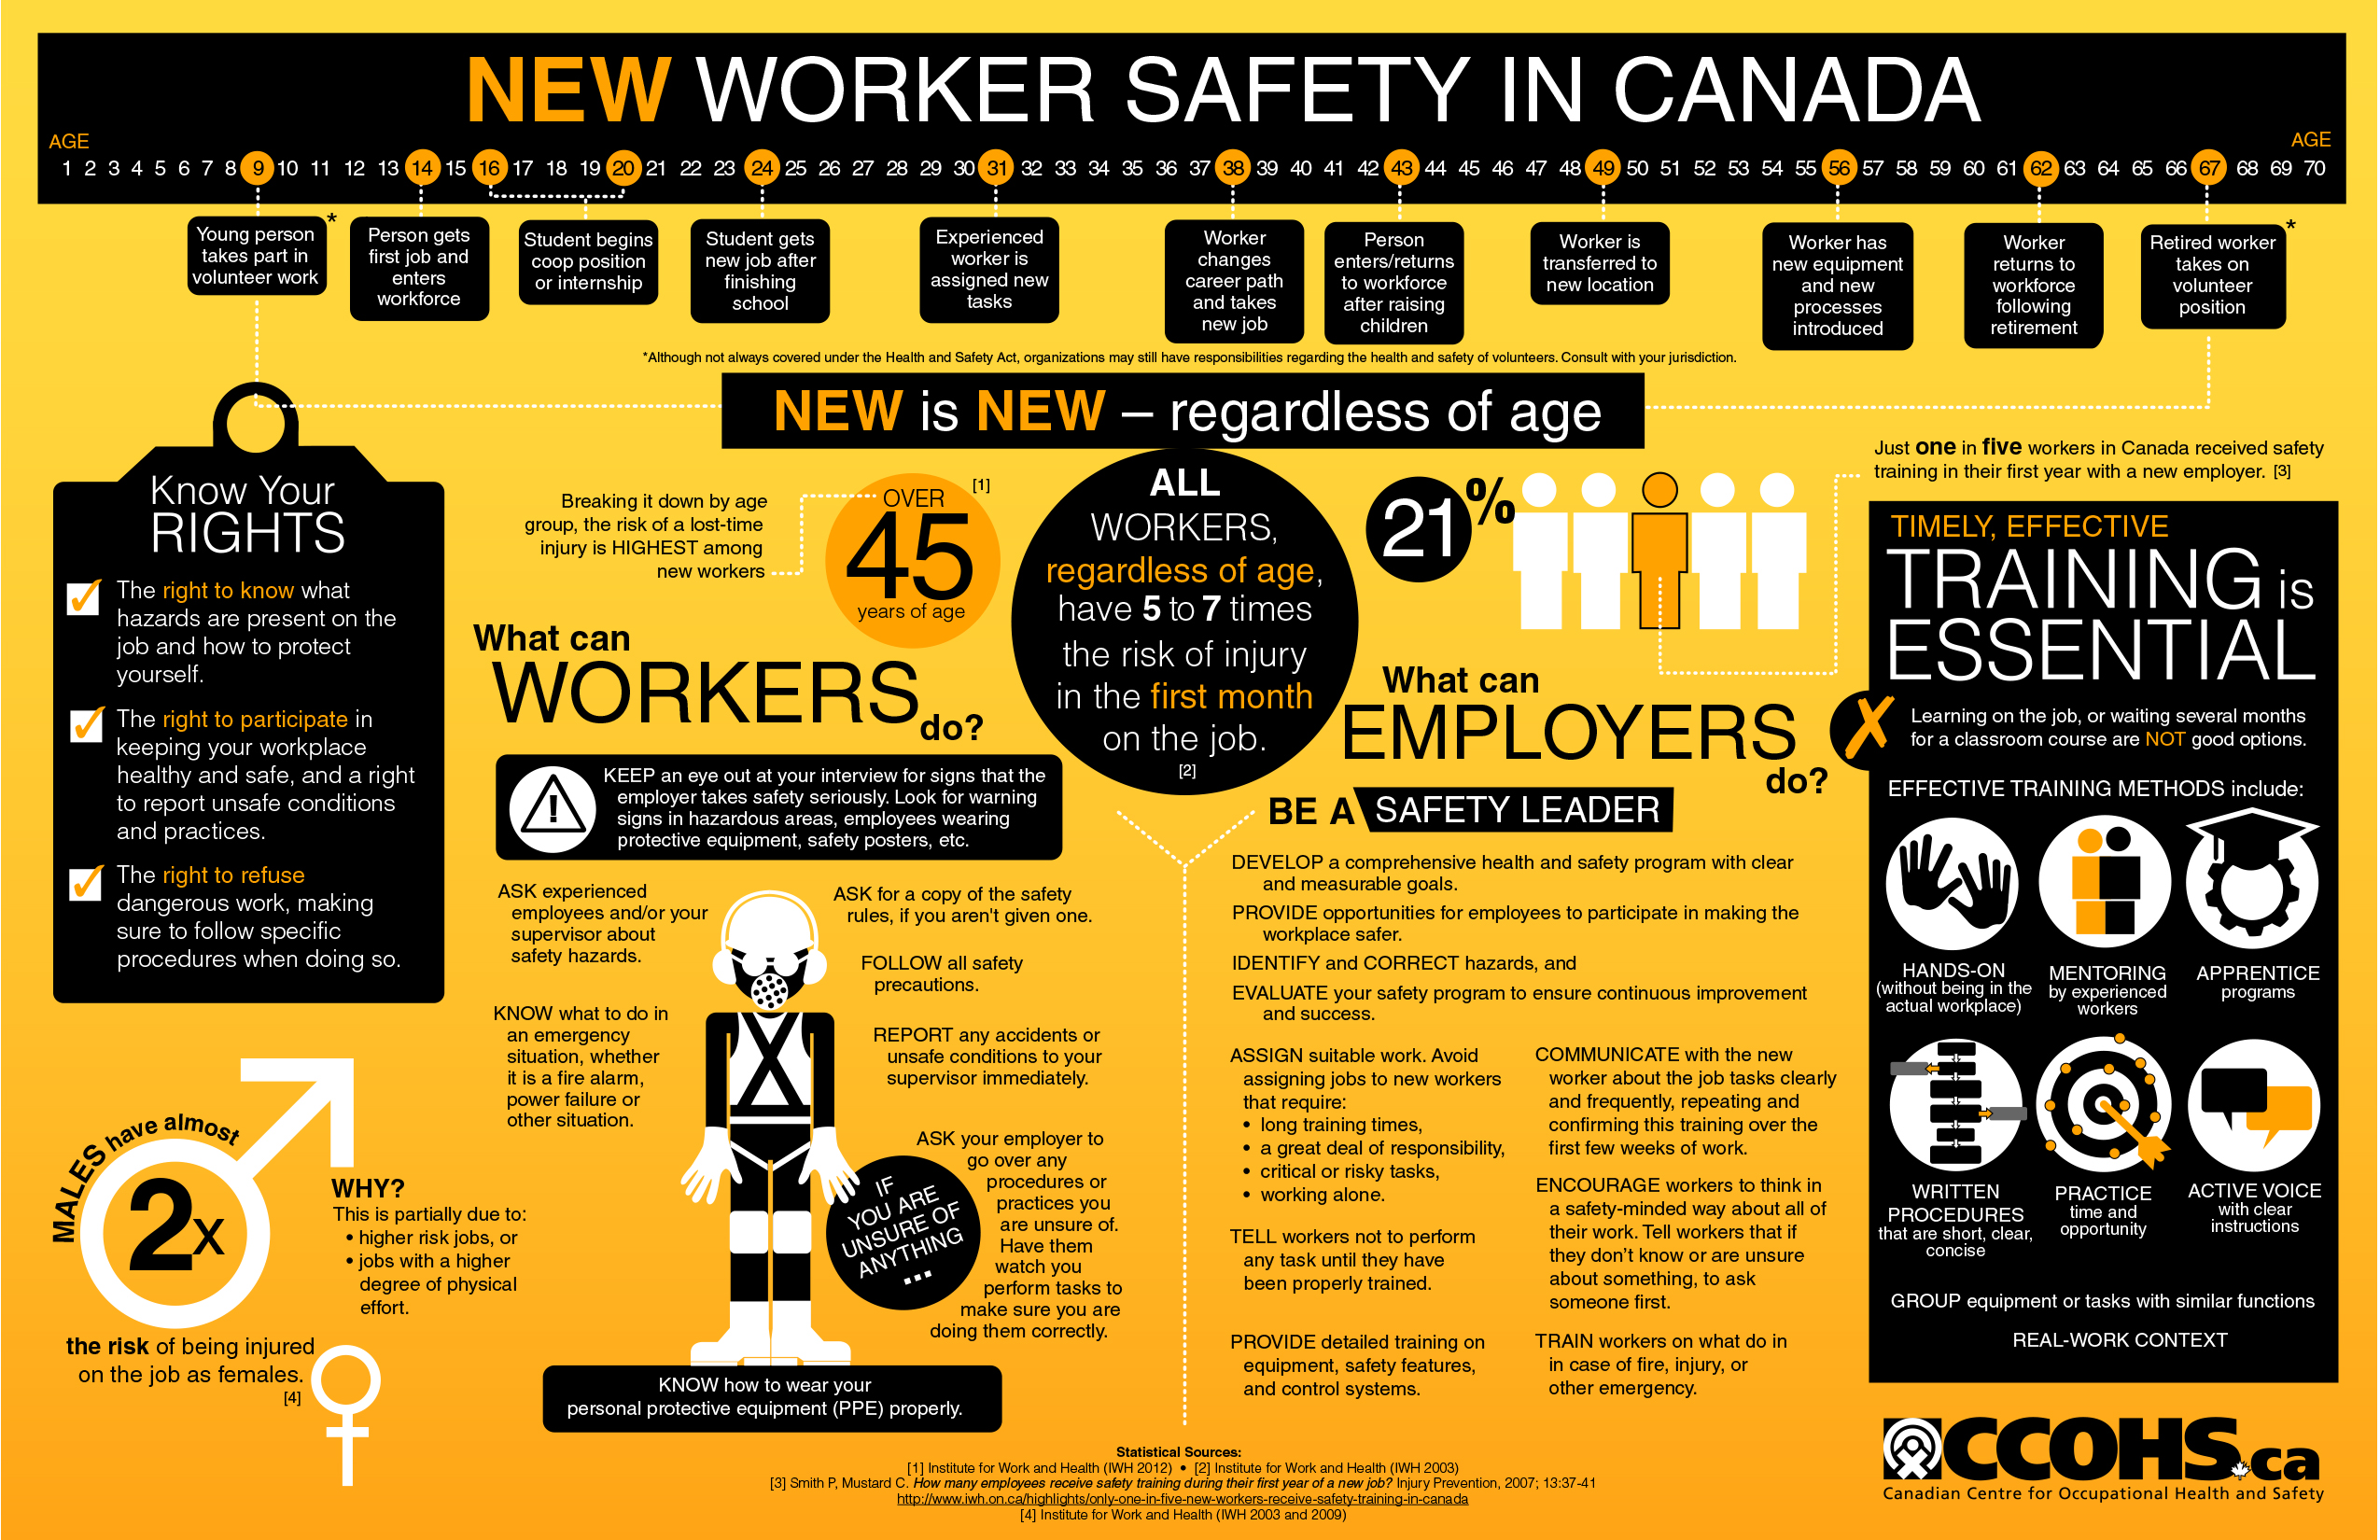 safety essays workplace The importance of safety a serious workplace injury or death changes lives forever - for families, friends, communities, and coworkers too human loss and suffering is immeasurable.